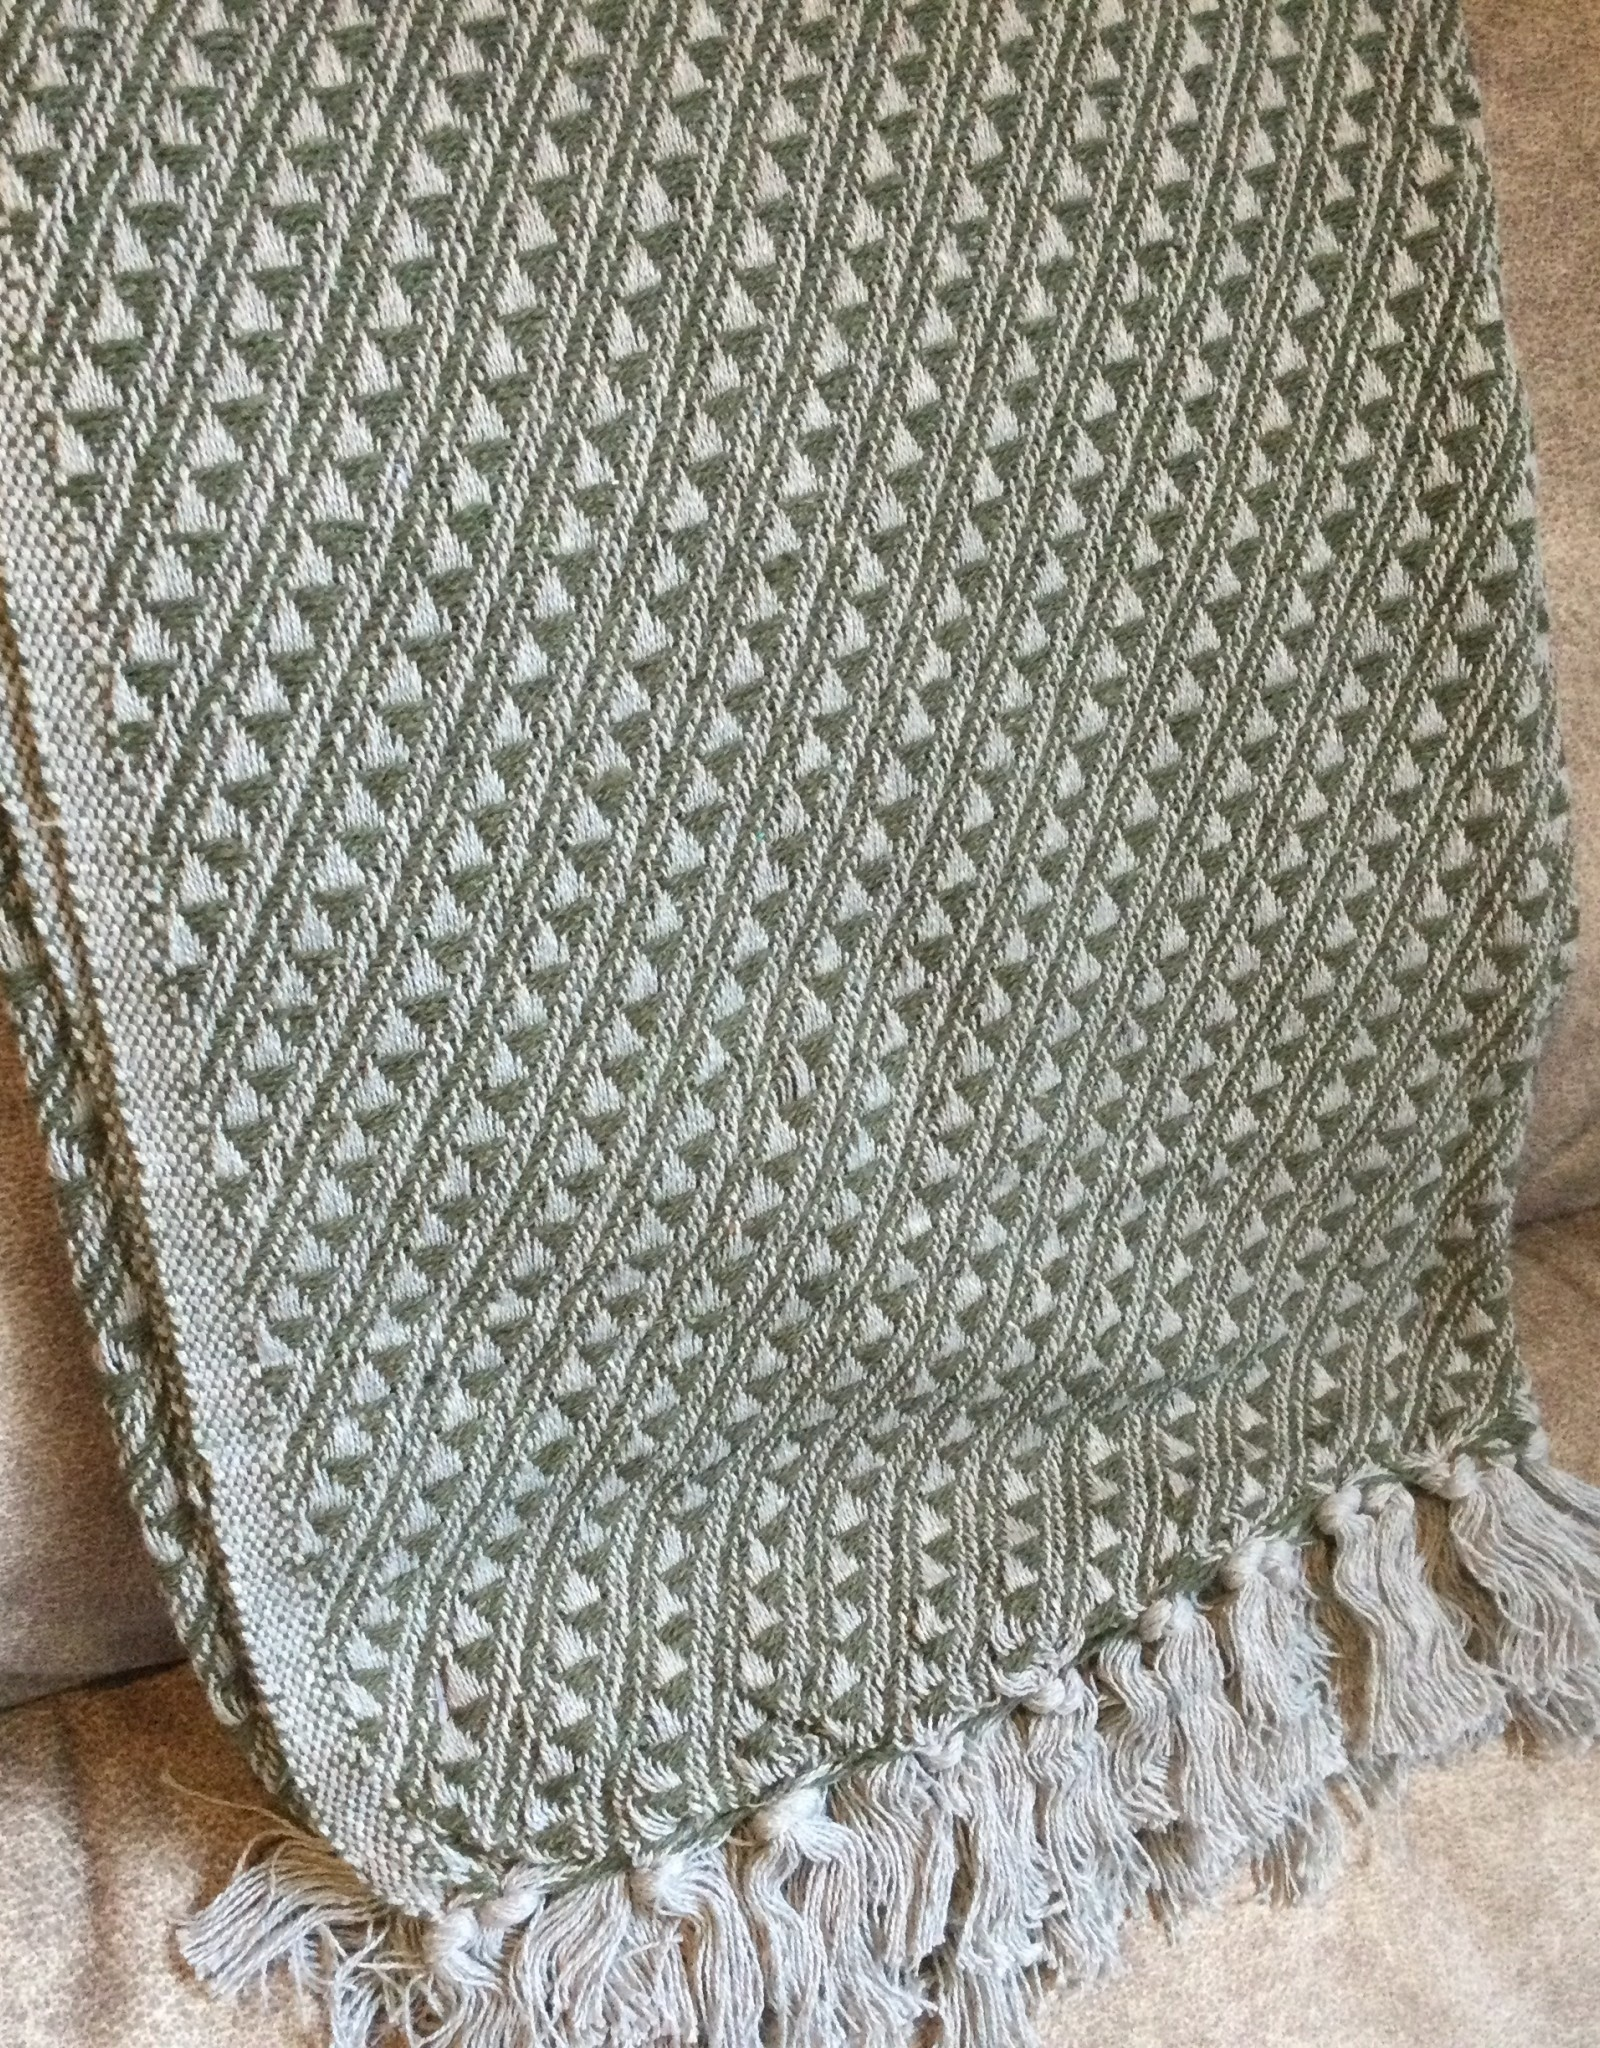 Blanket, Patterned Cotton Throw